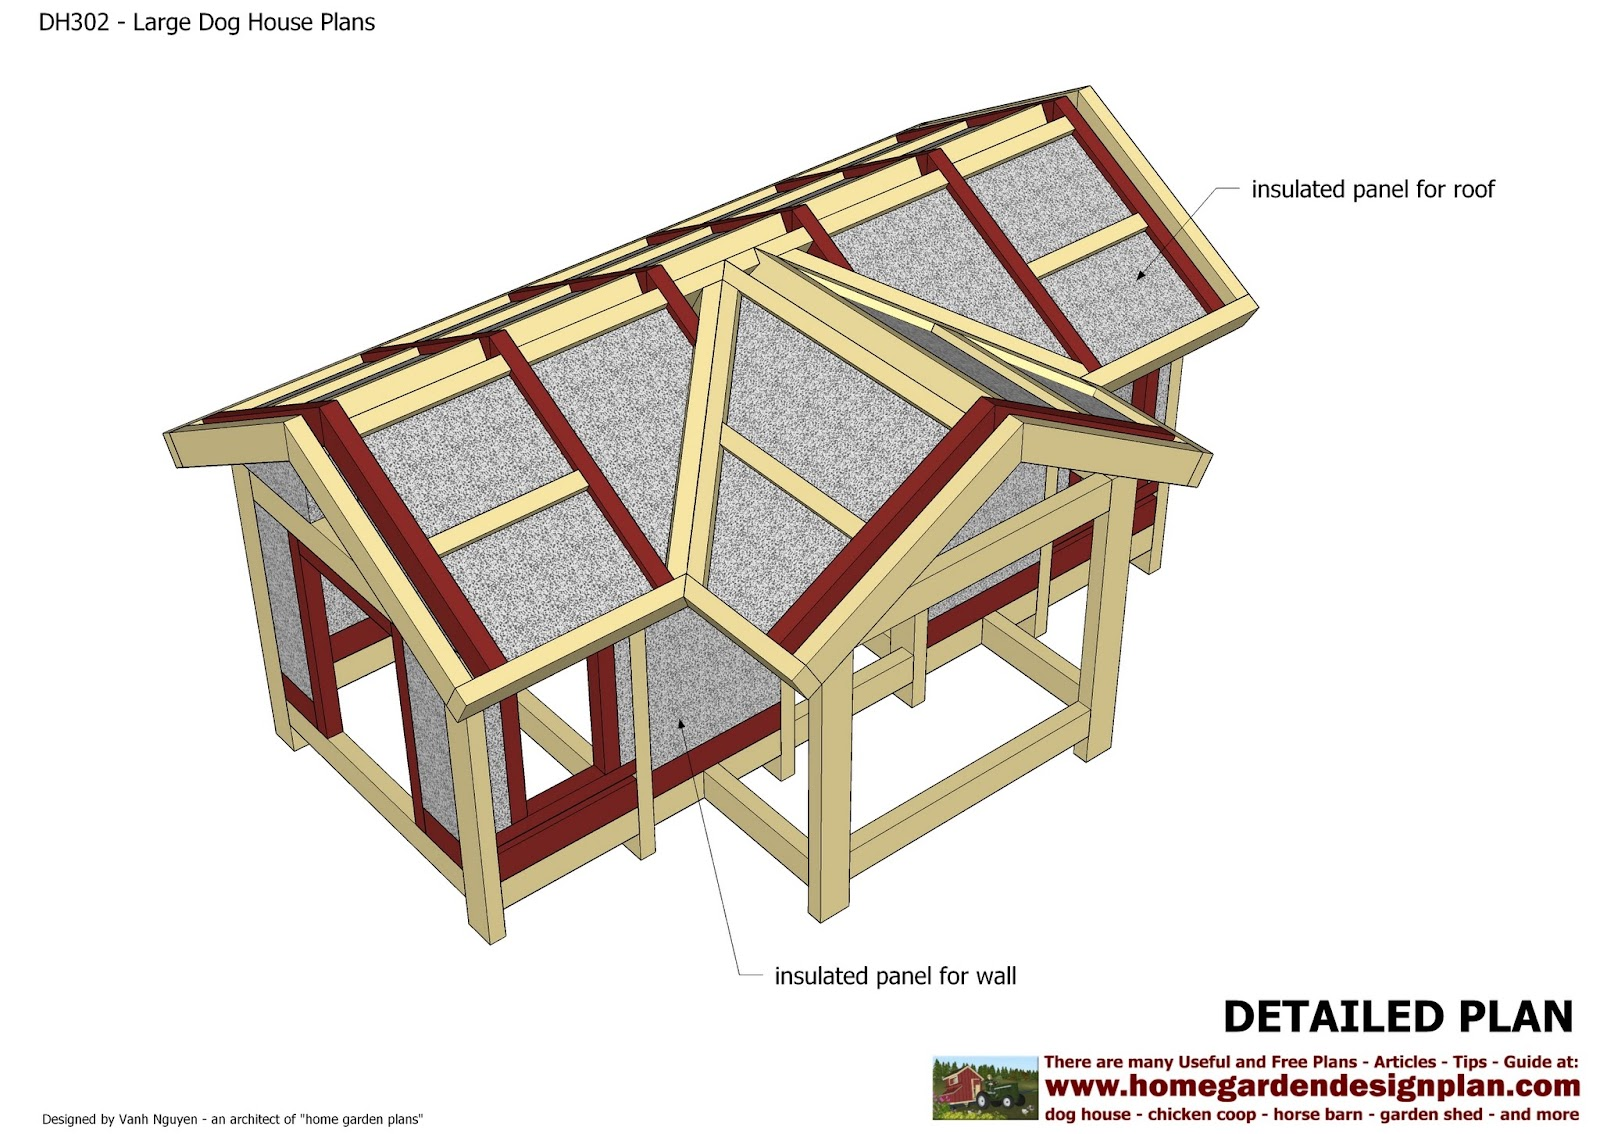 Groovy Home Garden Plans Dh302 Insulated Dog House Plans Construction Largest Home Design Picture Inspirations Pitcheantrous